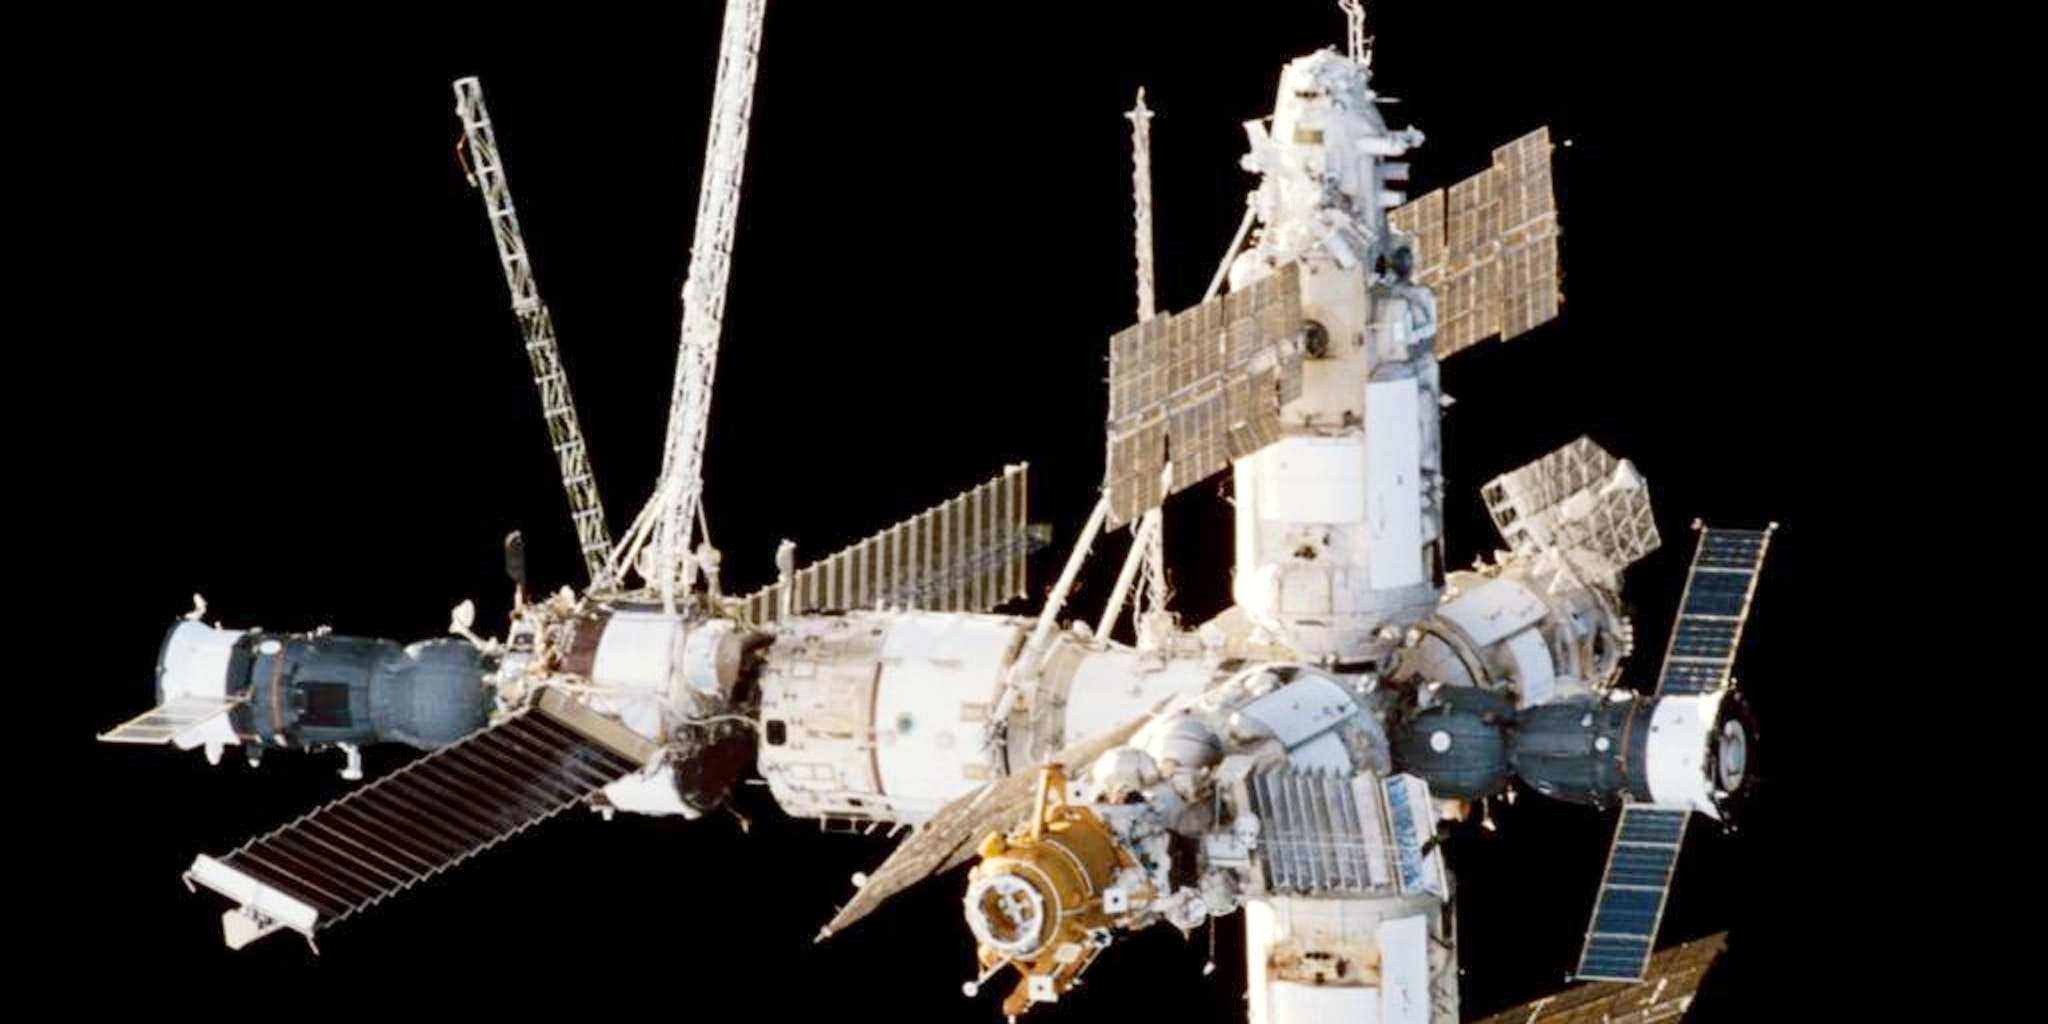 ussr launches mir space station - photo #10